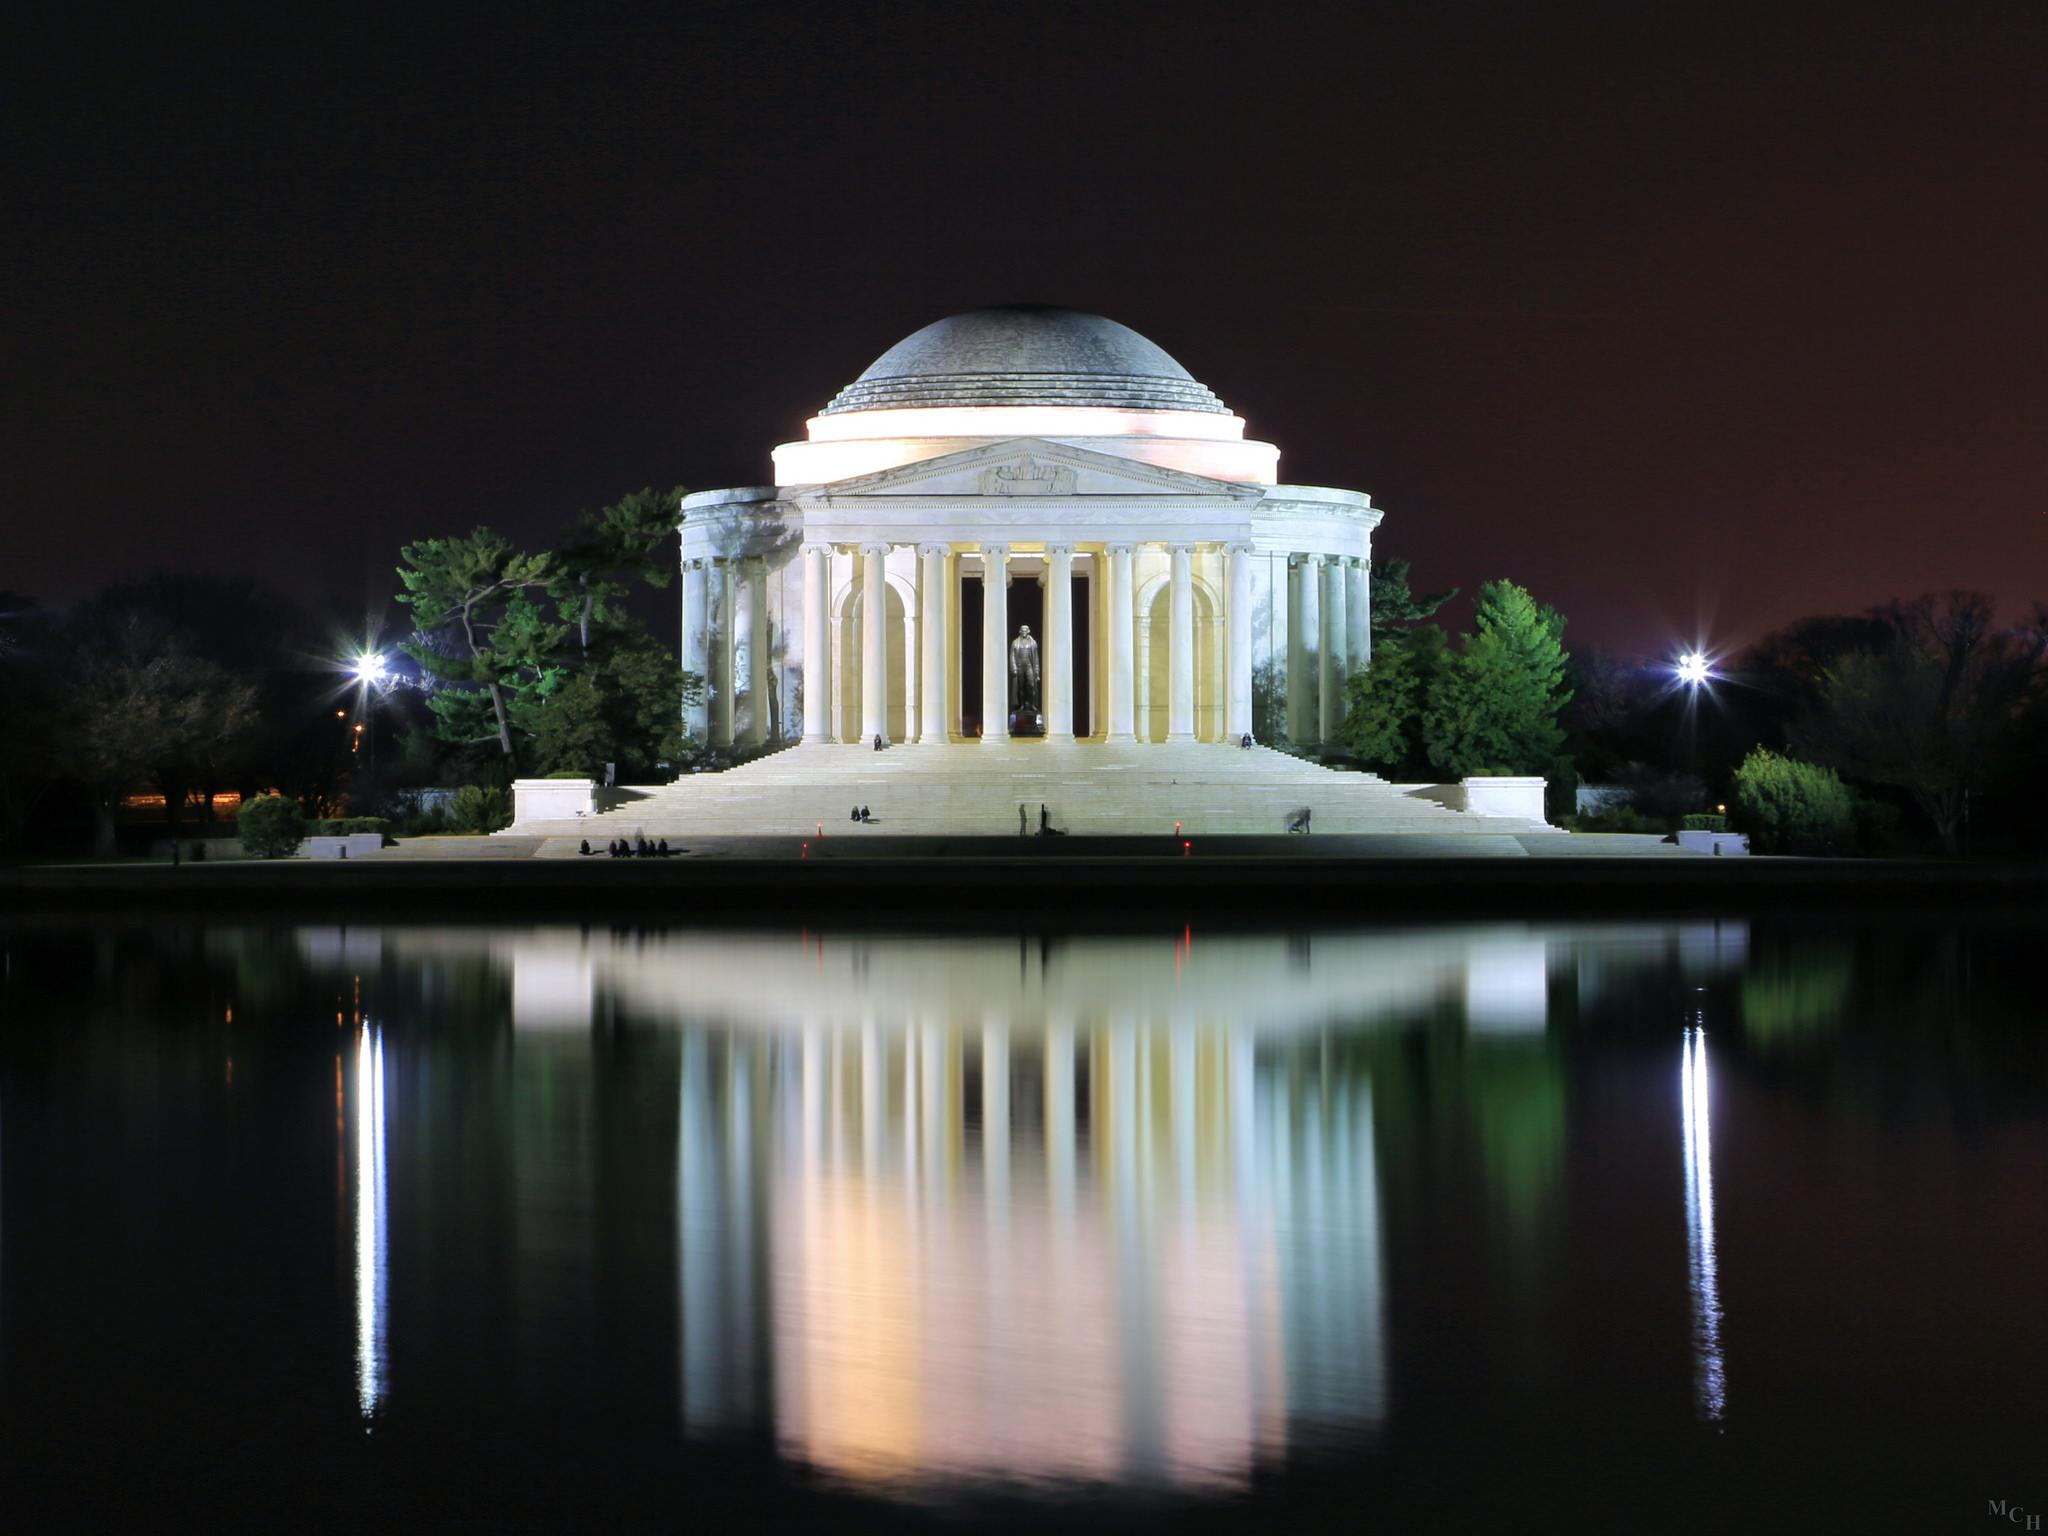 Darkness over the Jefferson Memorial